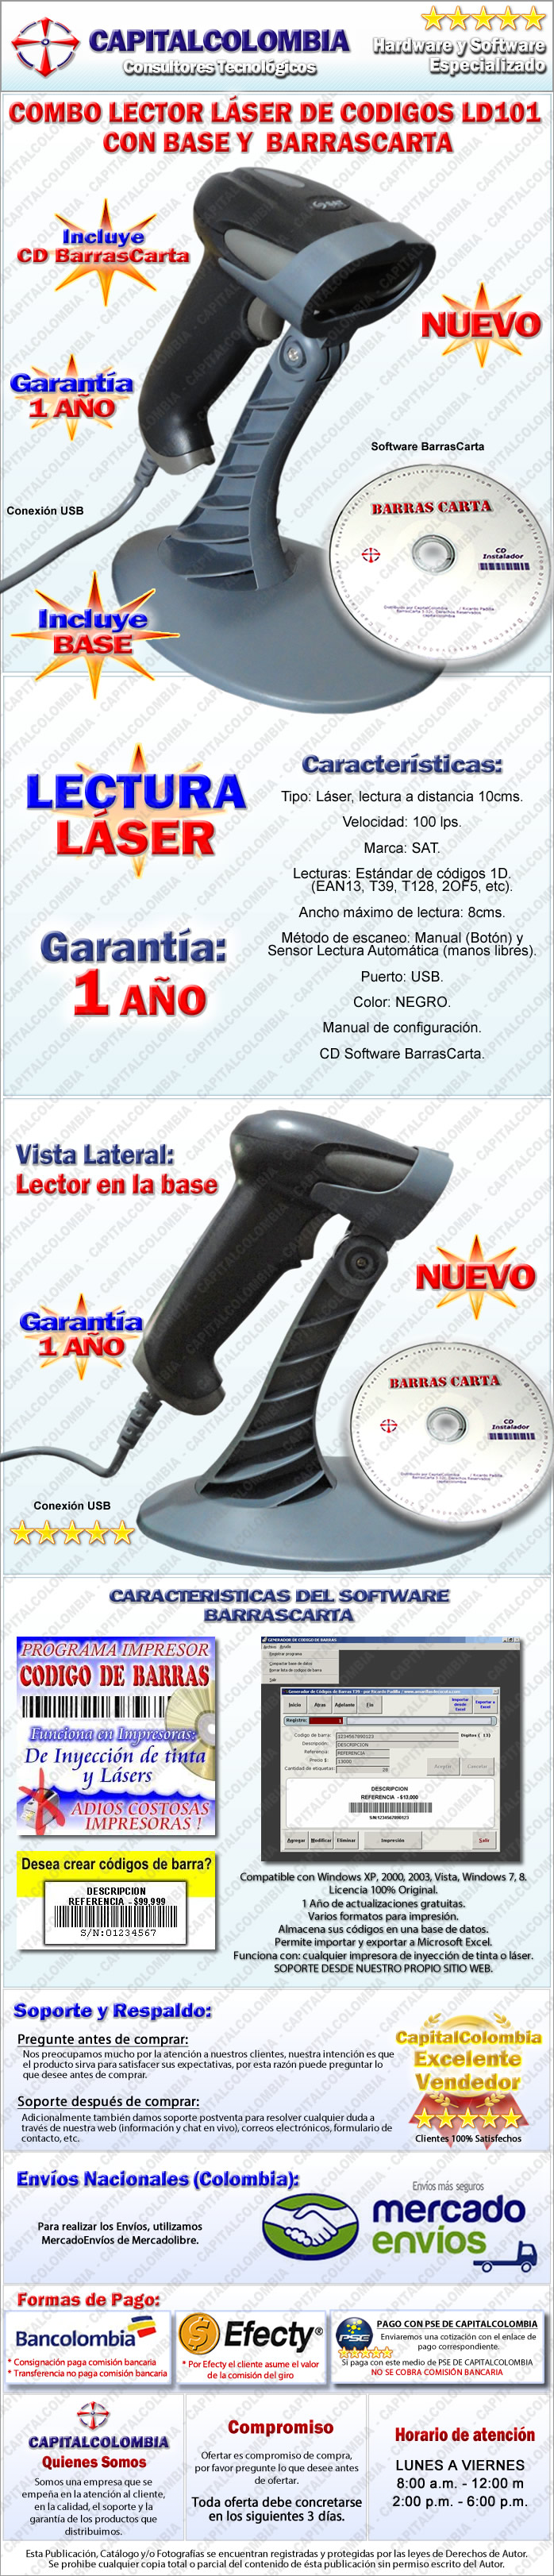 Lector de Códigos de Barras Láser con Base y software BarrasCarta